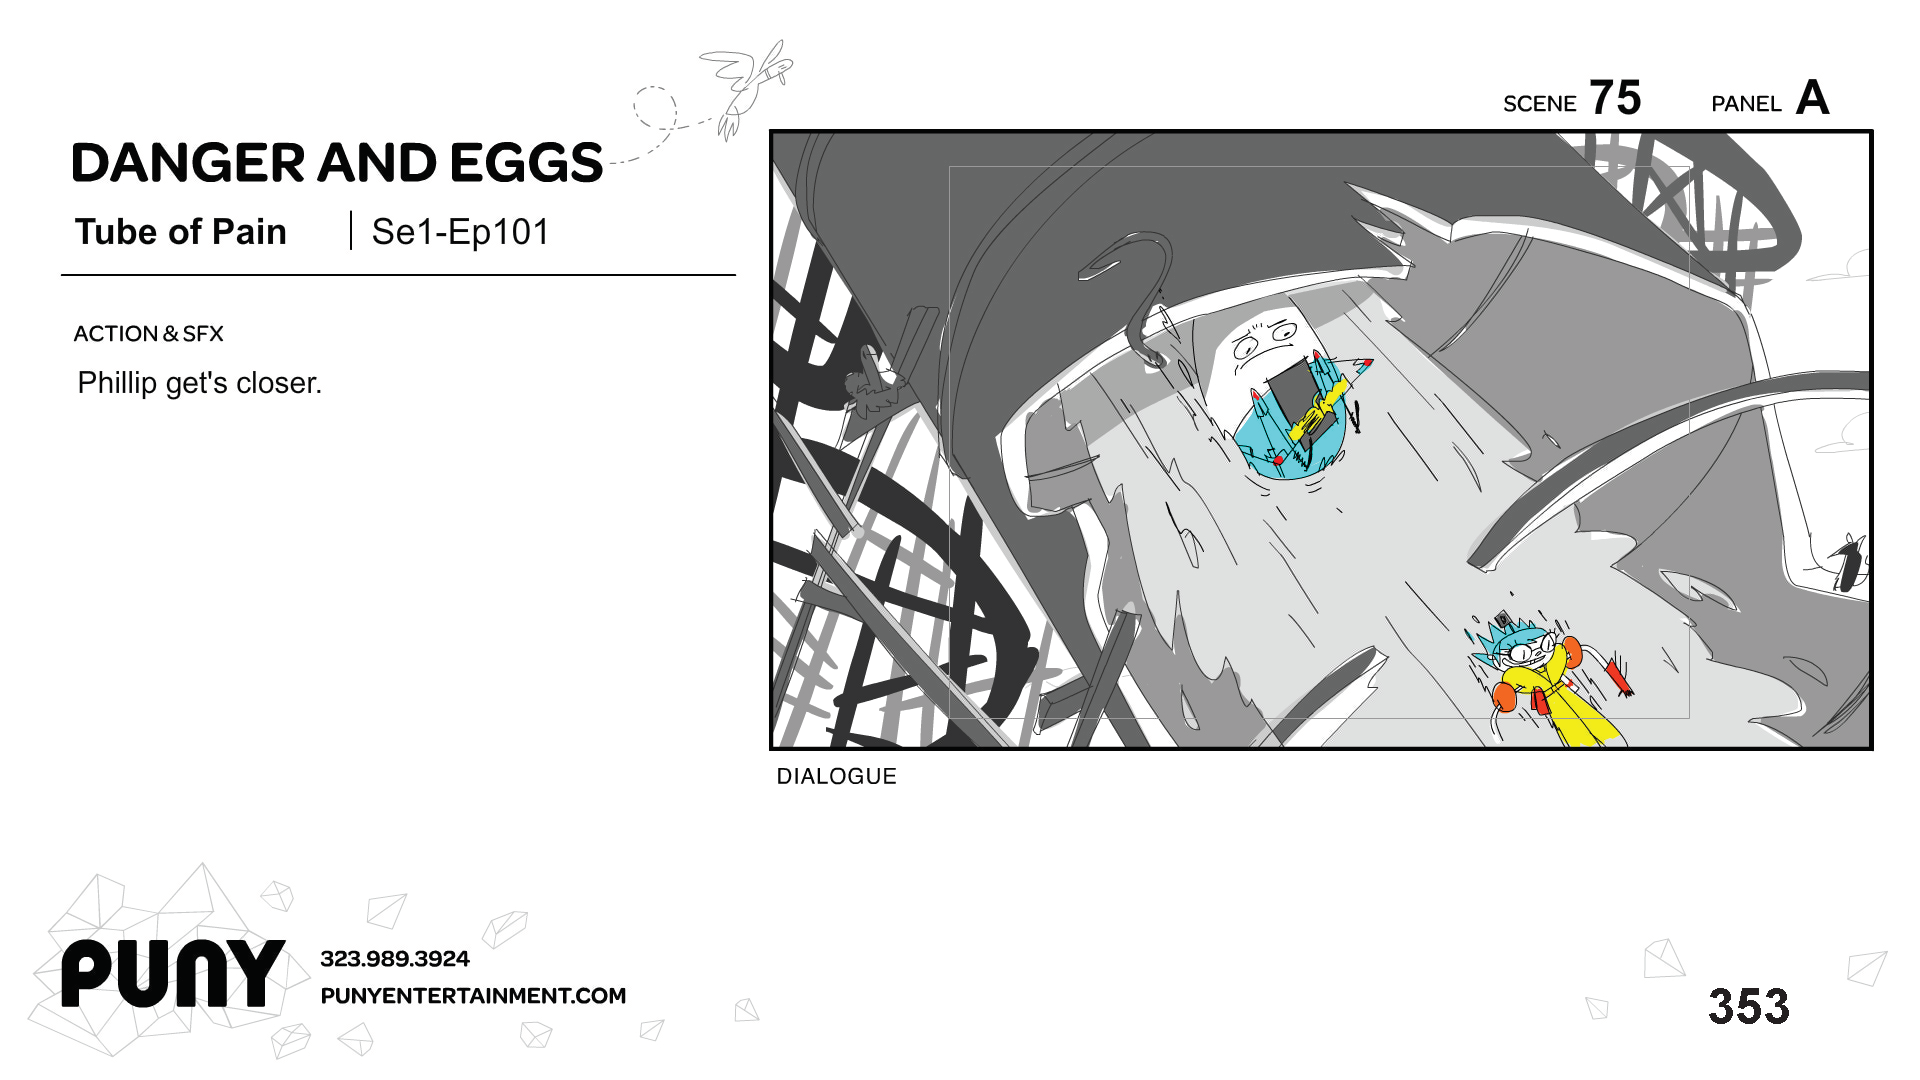 MikeOwens_STORYBOARDS_DangerAndEggs_Page_248.png